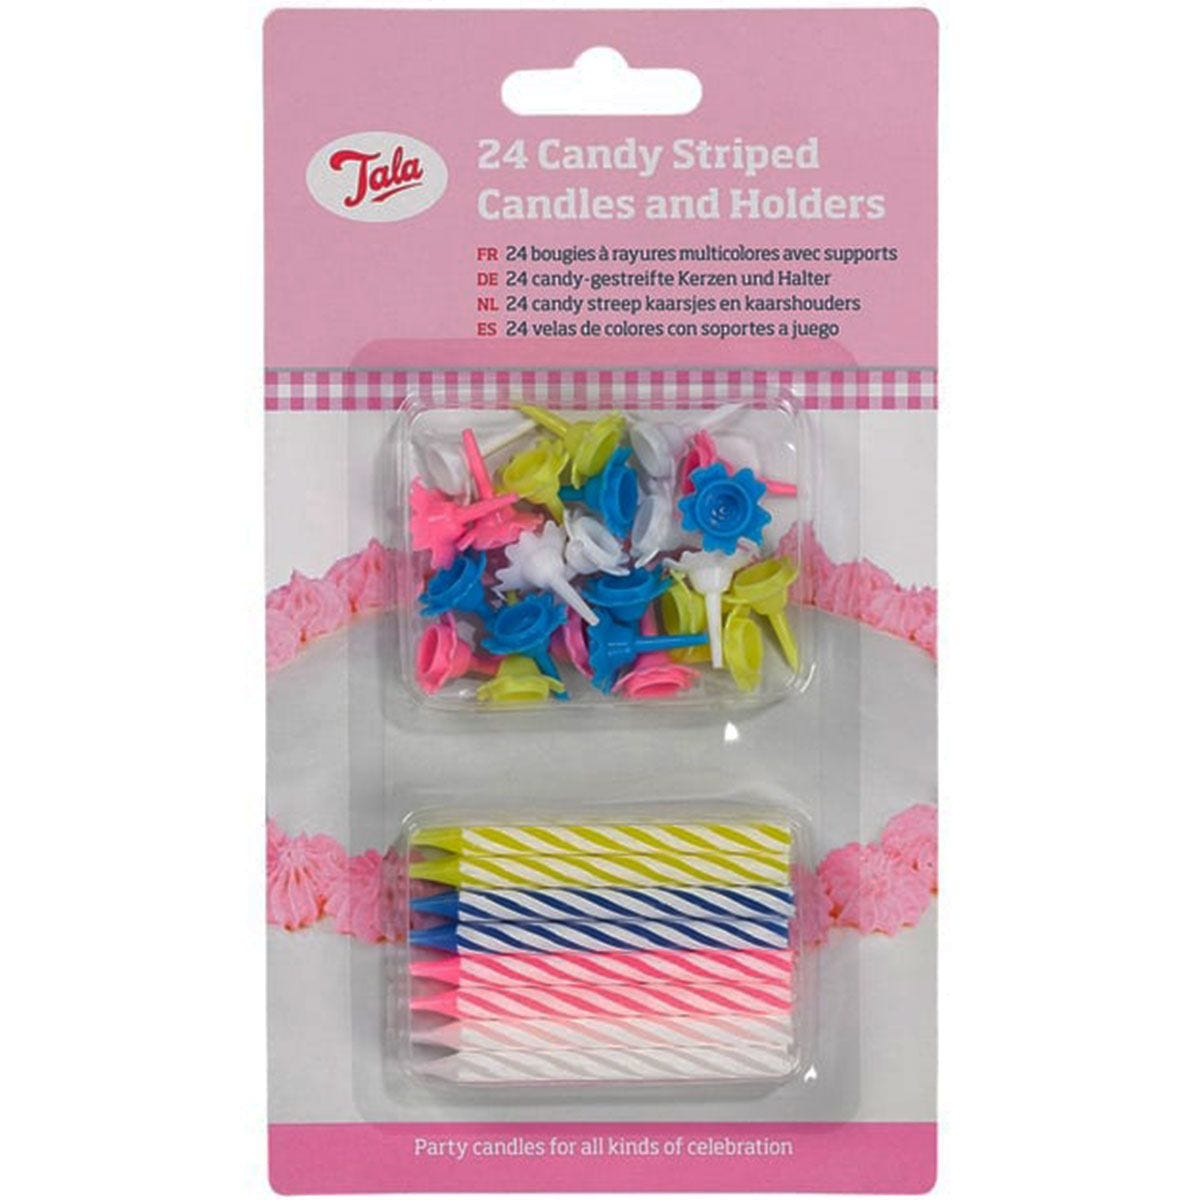 Tala Striped Candles with Holders - Pack of 24